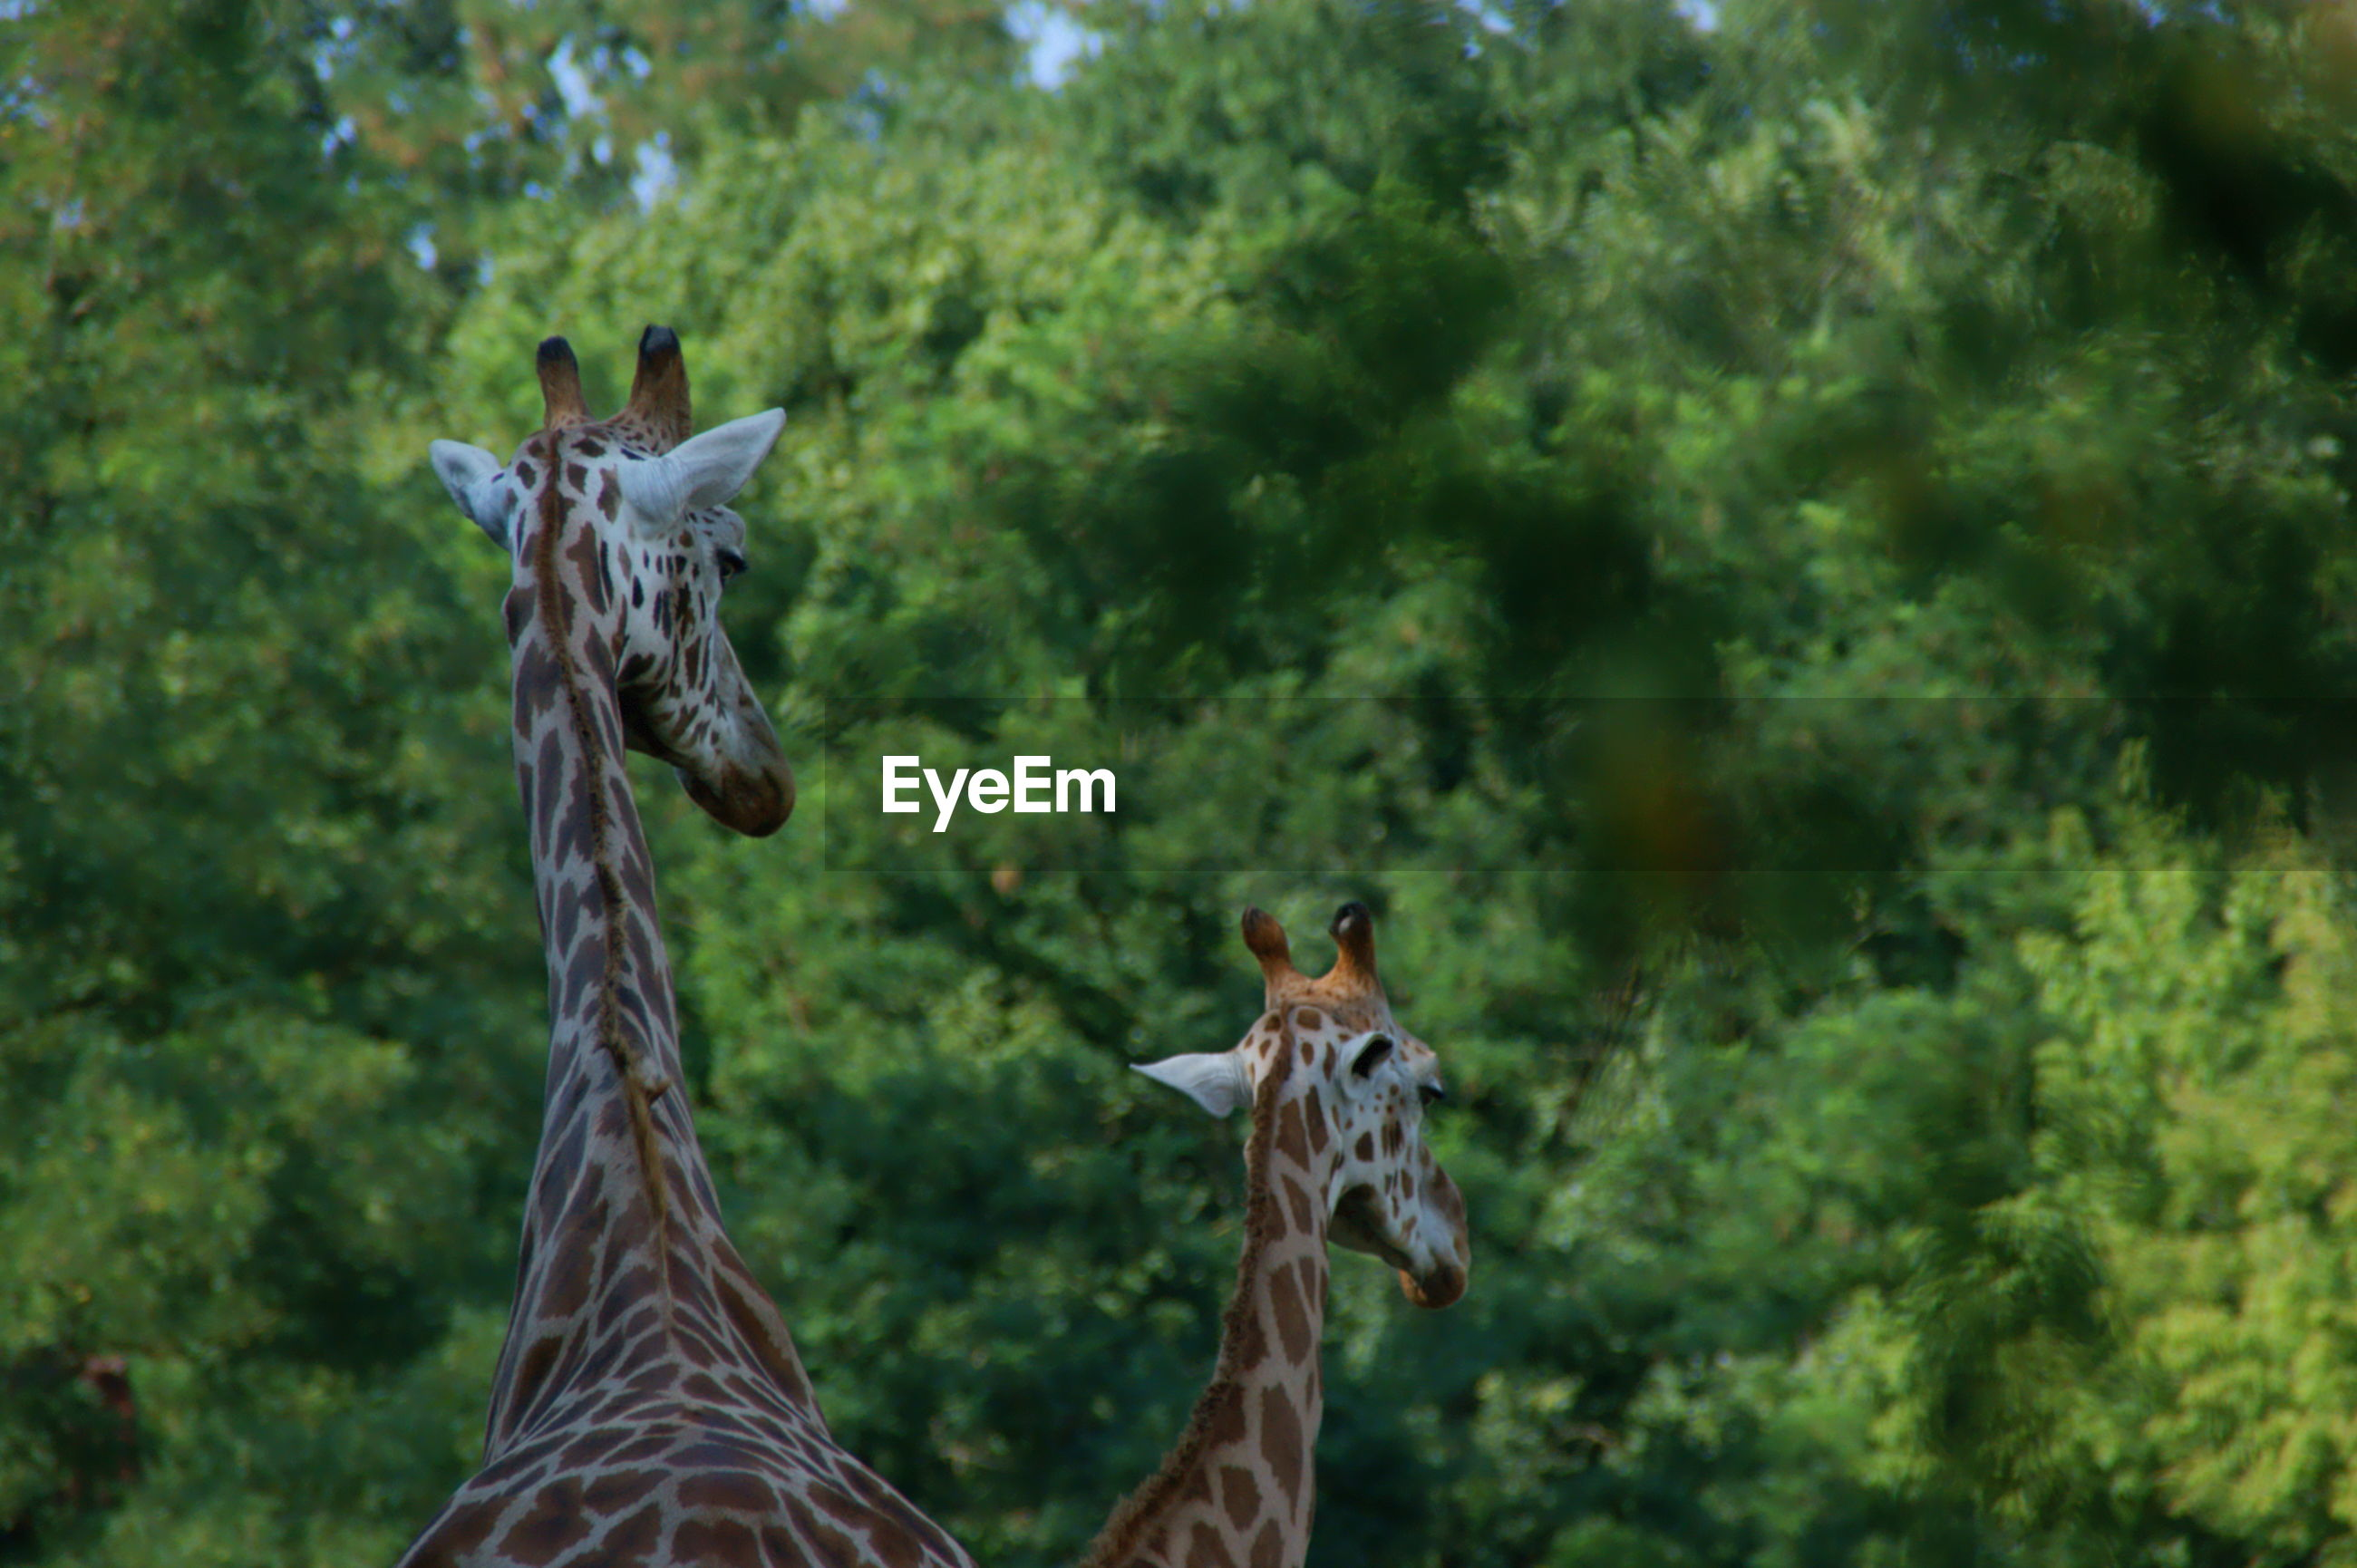 Two giraffes in a forest